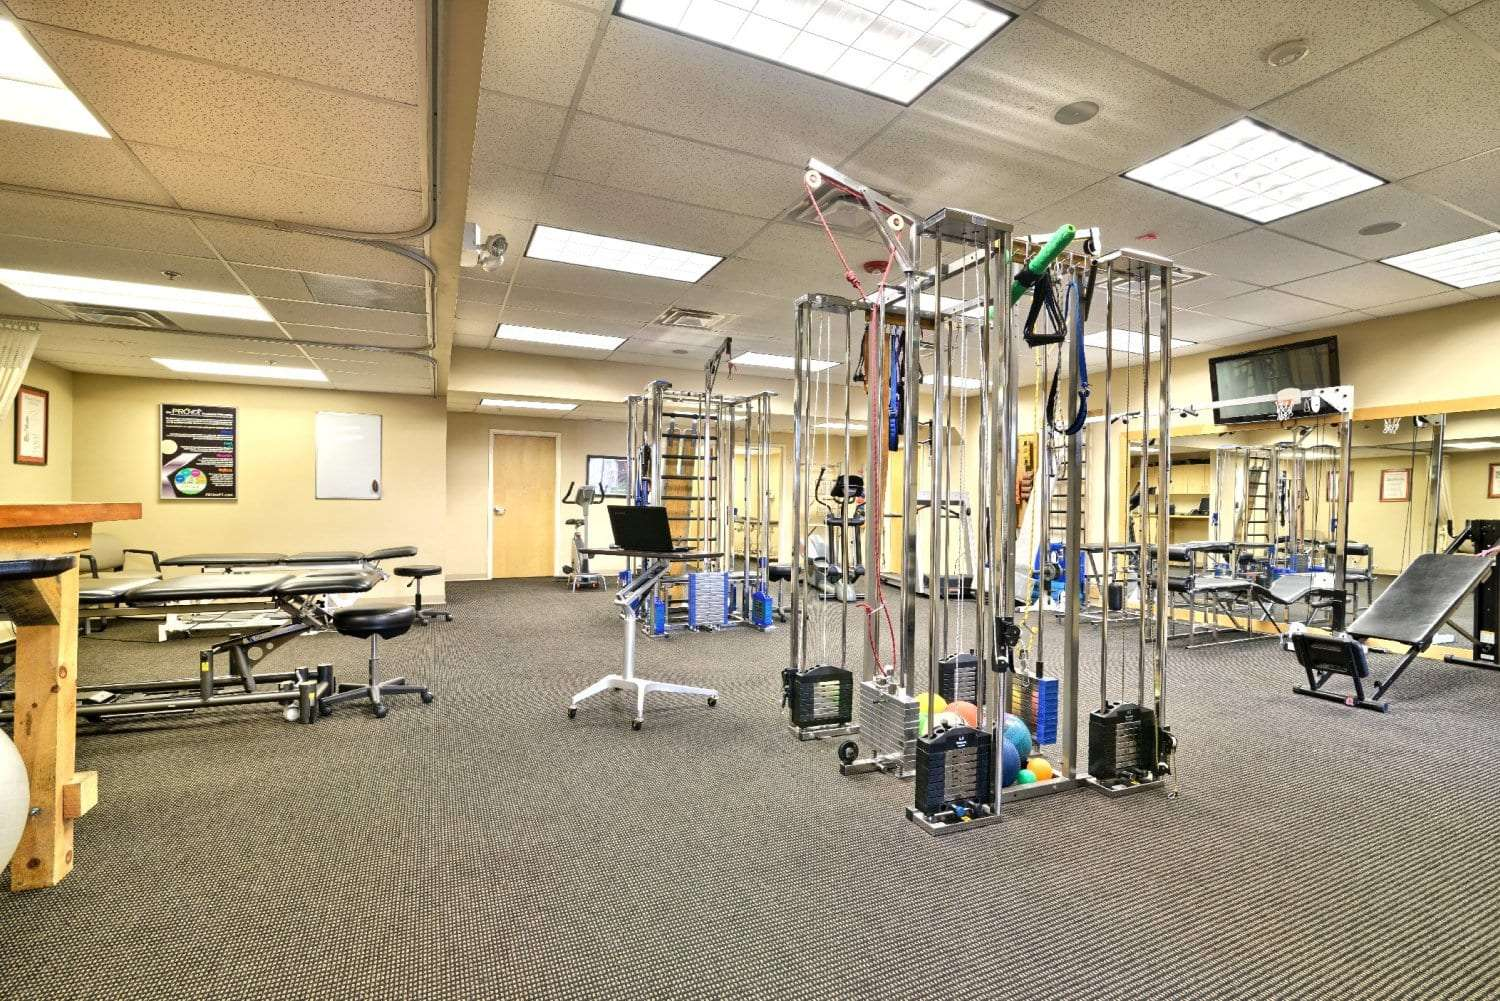 Here is an image of equipment in our clean facility at our physical therapy clinic in Springfield, Massachusetts.